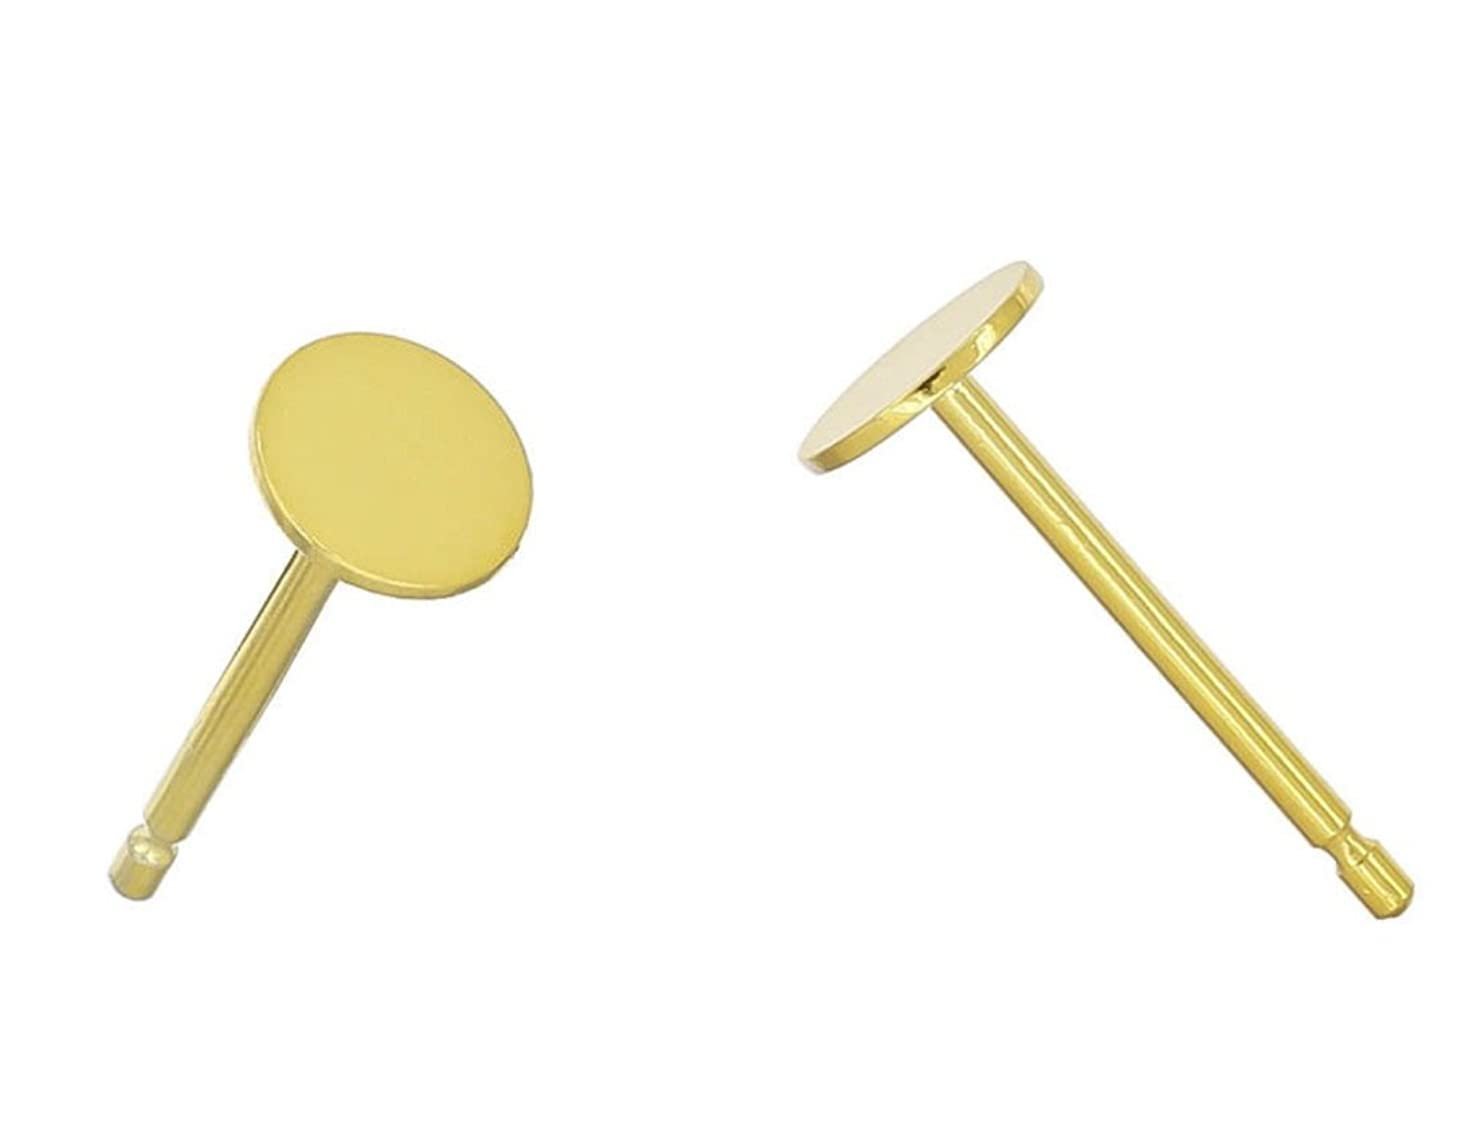 10 Pairs 14k Gold on Sterling Silver Earring Posts | 4mm Small Flat Board Glue On Post Setting W/Earnut Safety Clutches Backs SS277-4